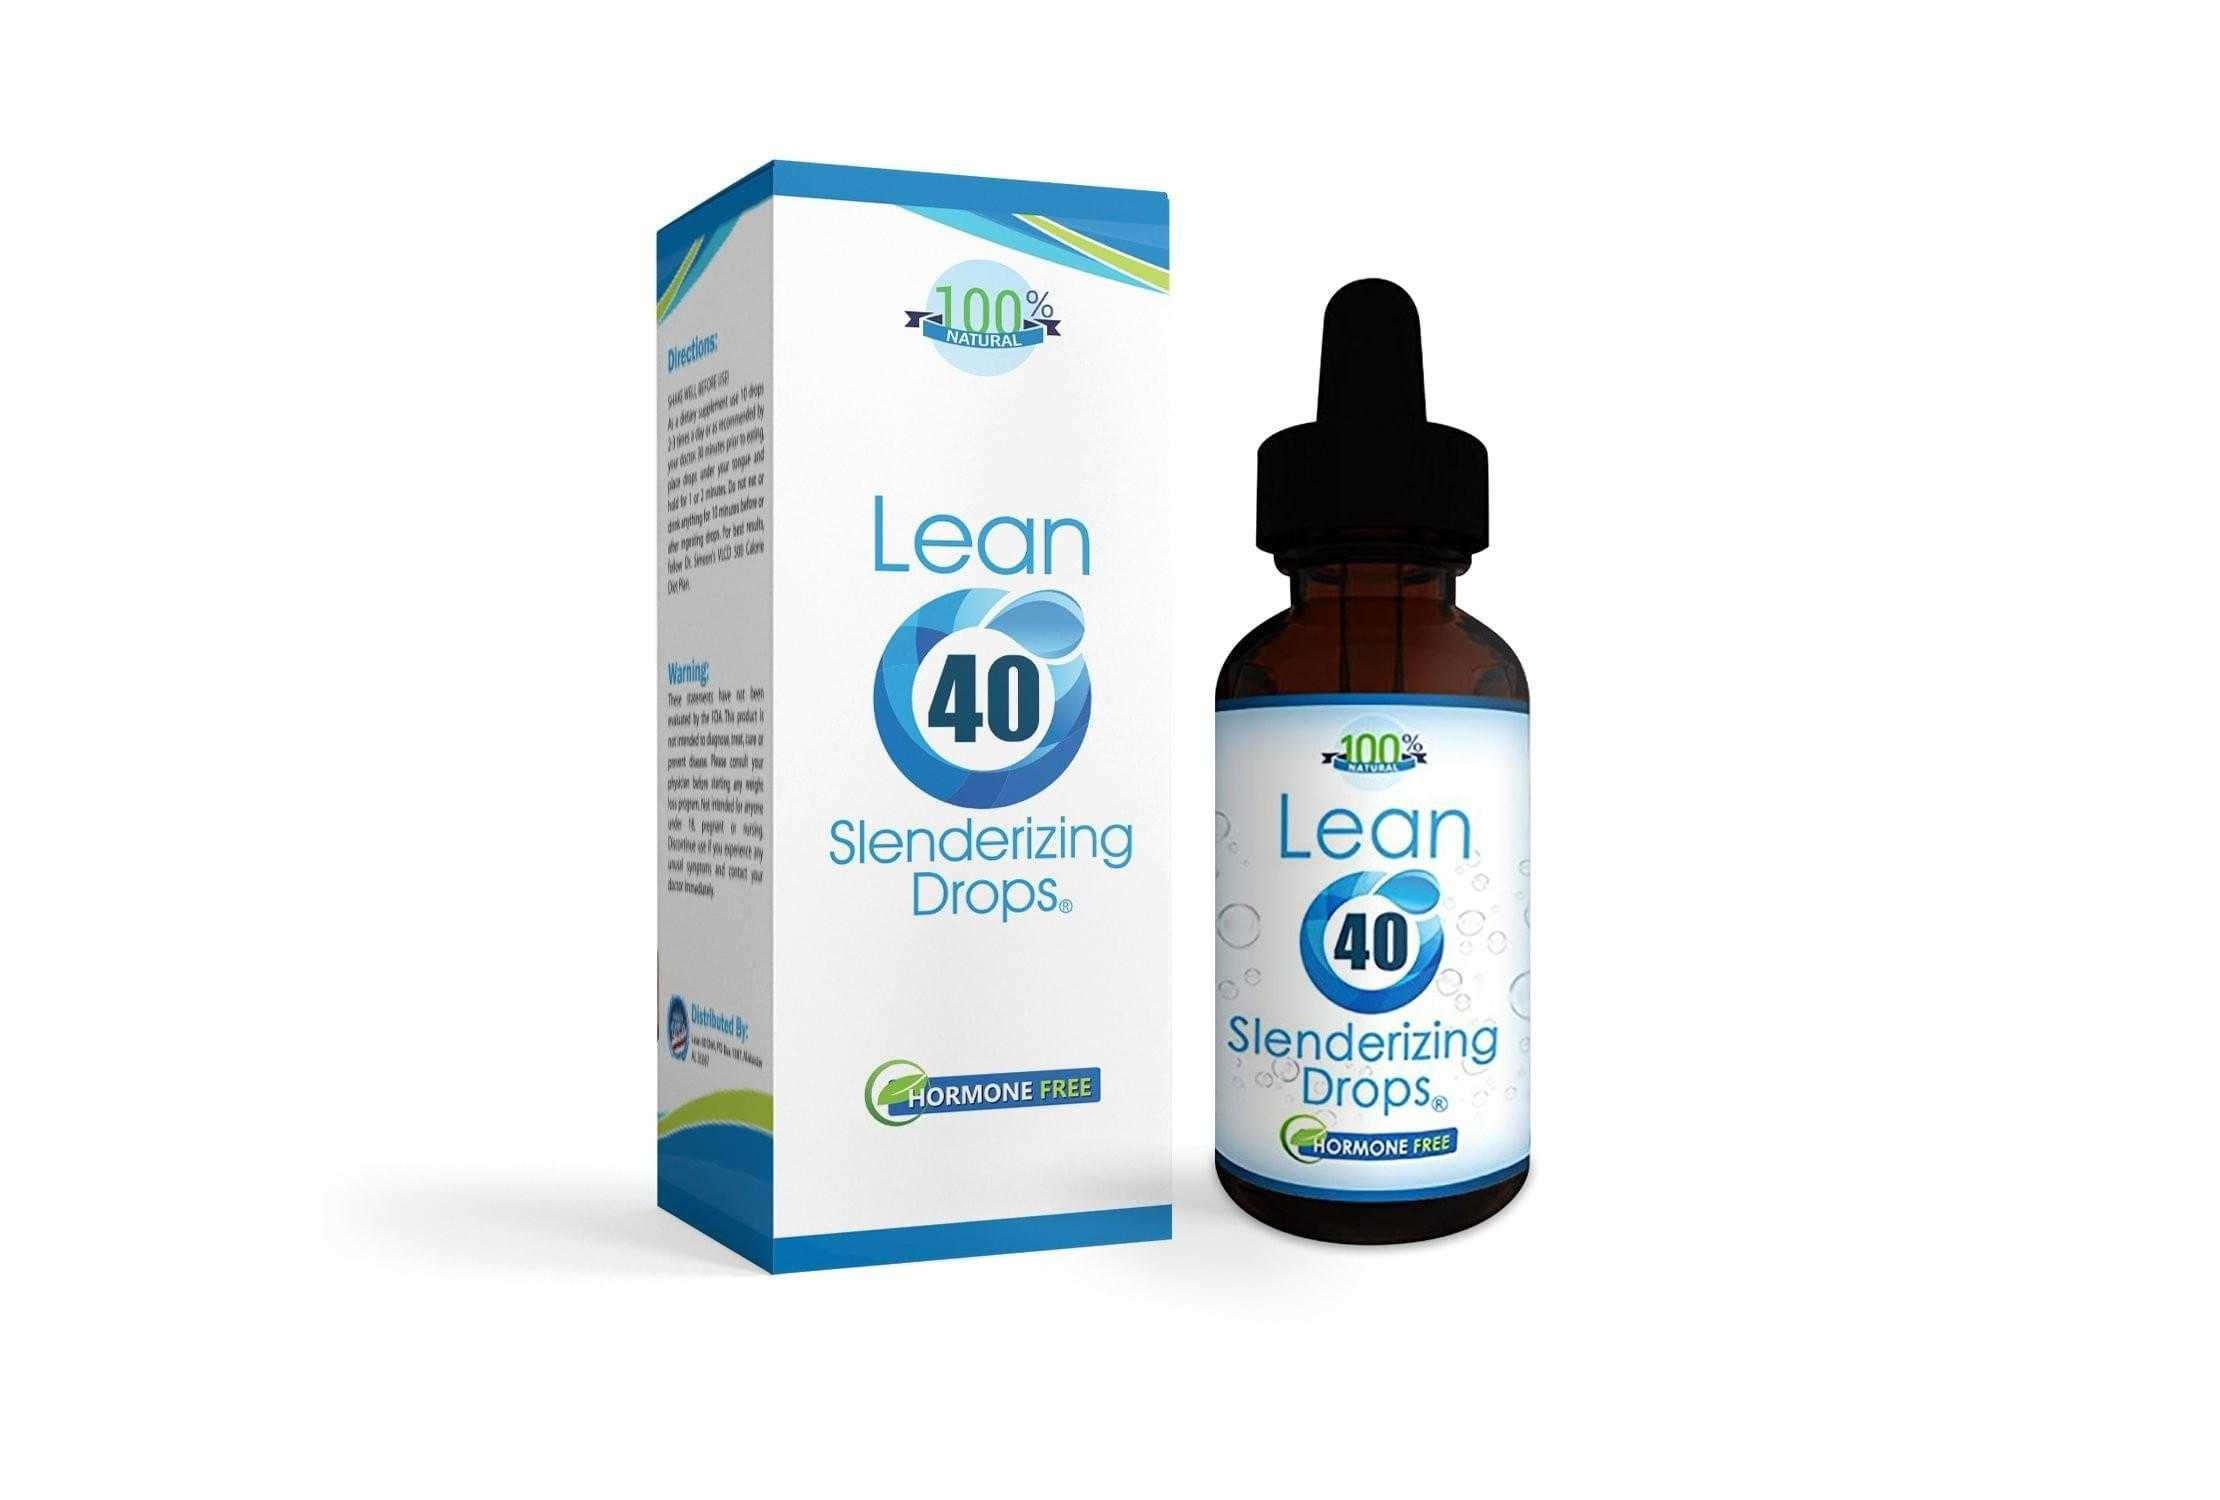 Hormone Free HCG Diet Drops For Weight Loss - 40 Day Program - Lean 40